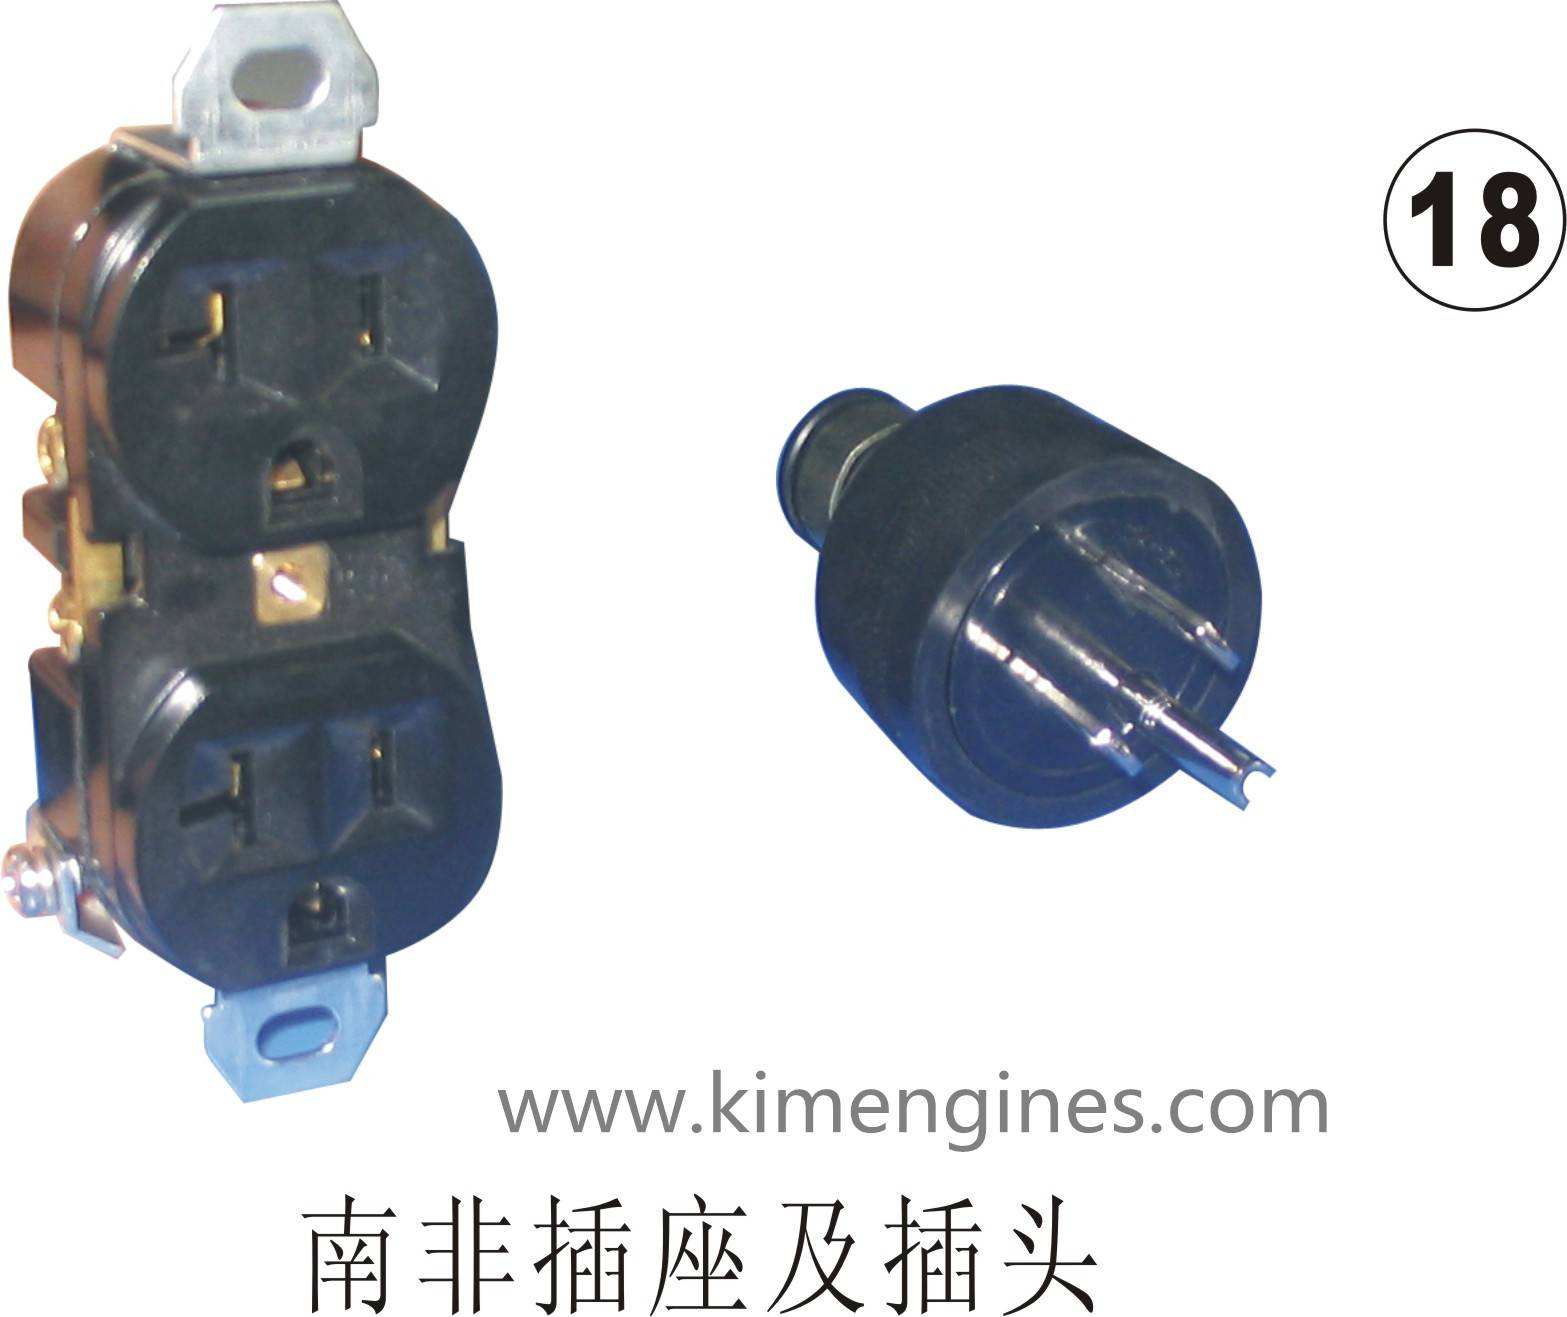 Plug / socket for GX120, GX160-200, GX240-420 generatror with high quality